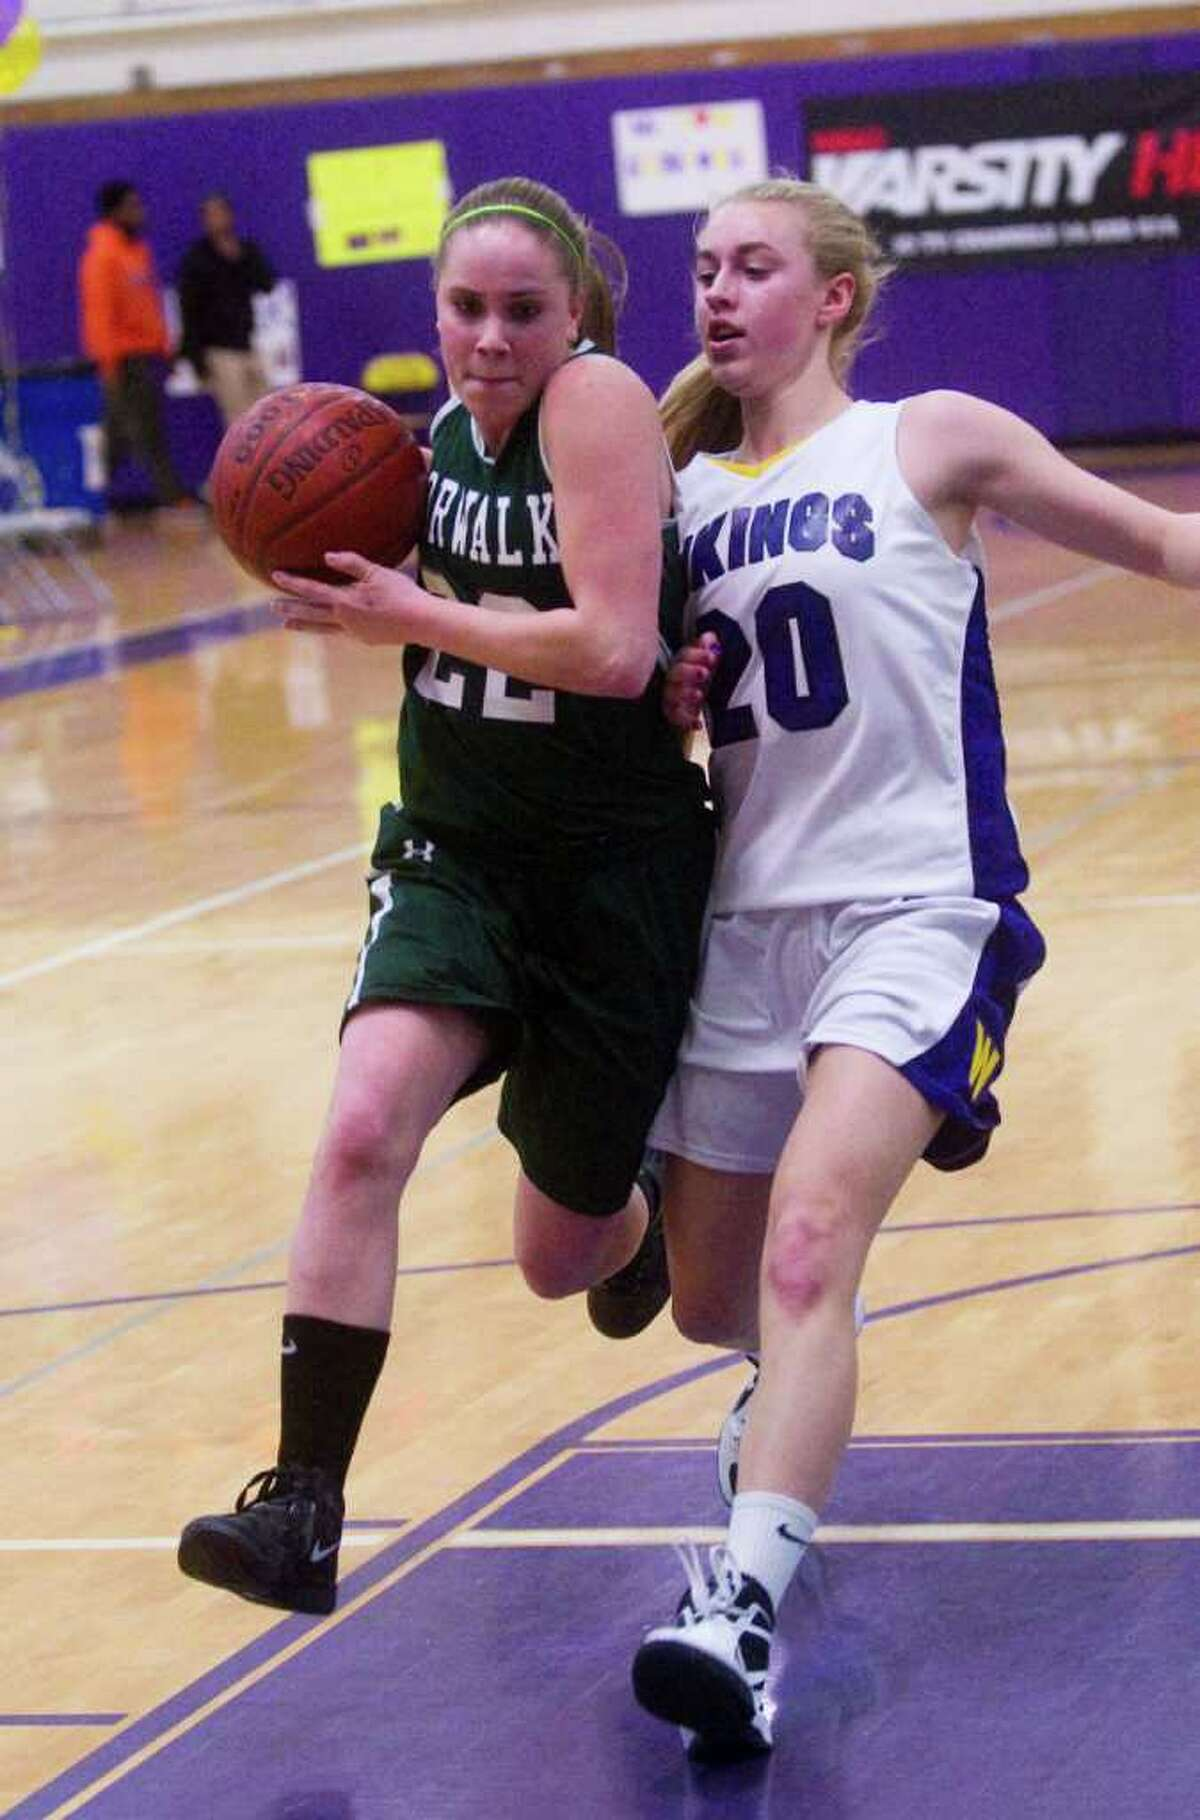 Norwalk's Katie Schmidt and Westhill's Stephanie Roones battlle as Westhill High School hosts Norwalk in a girls basketball game in Stamford, Conn., February 15, 2012.